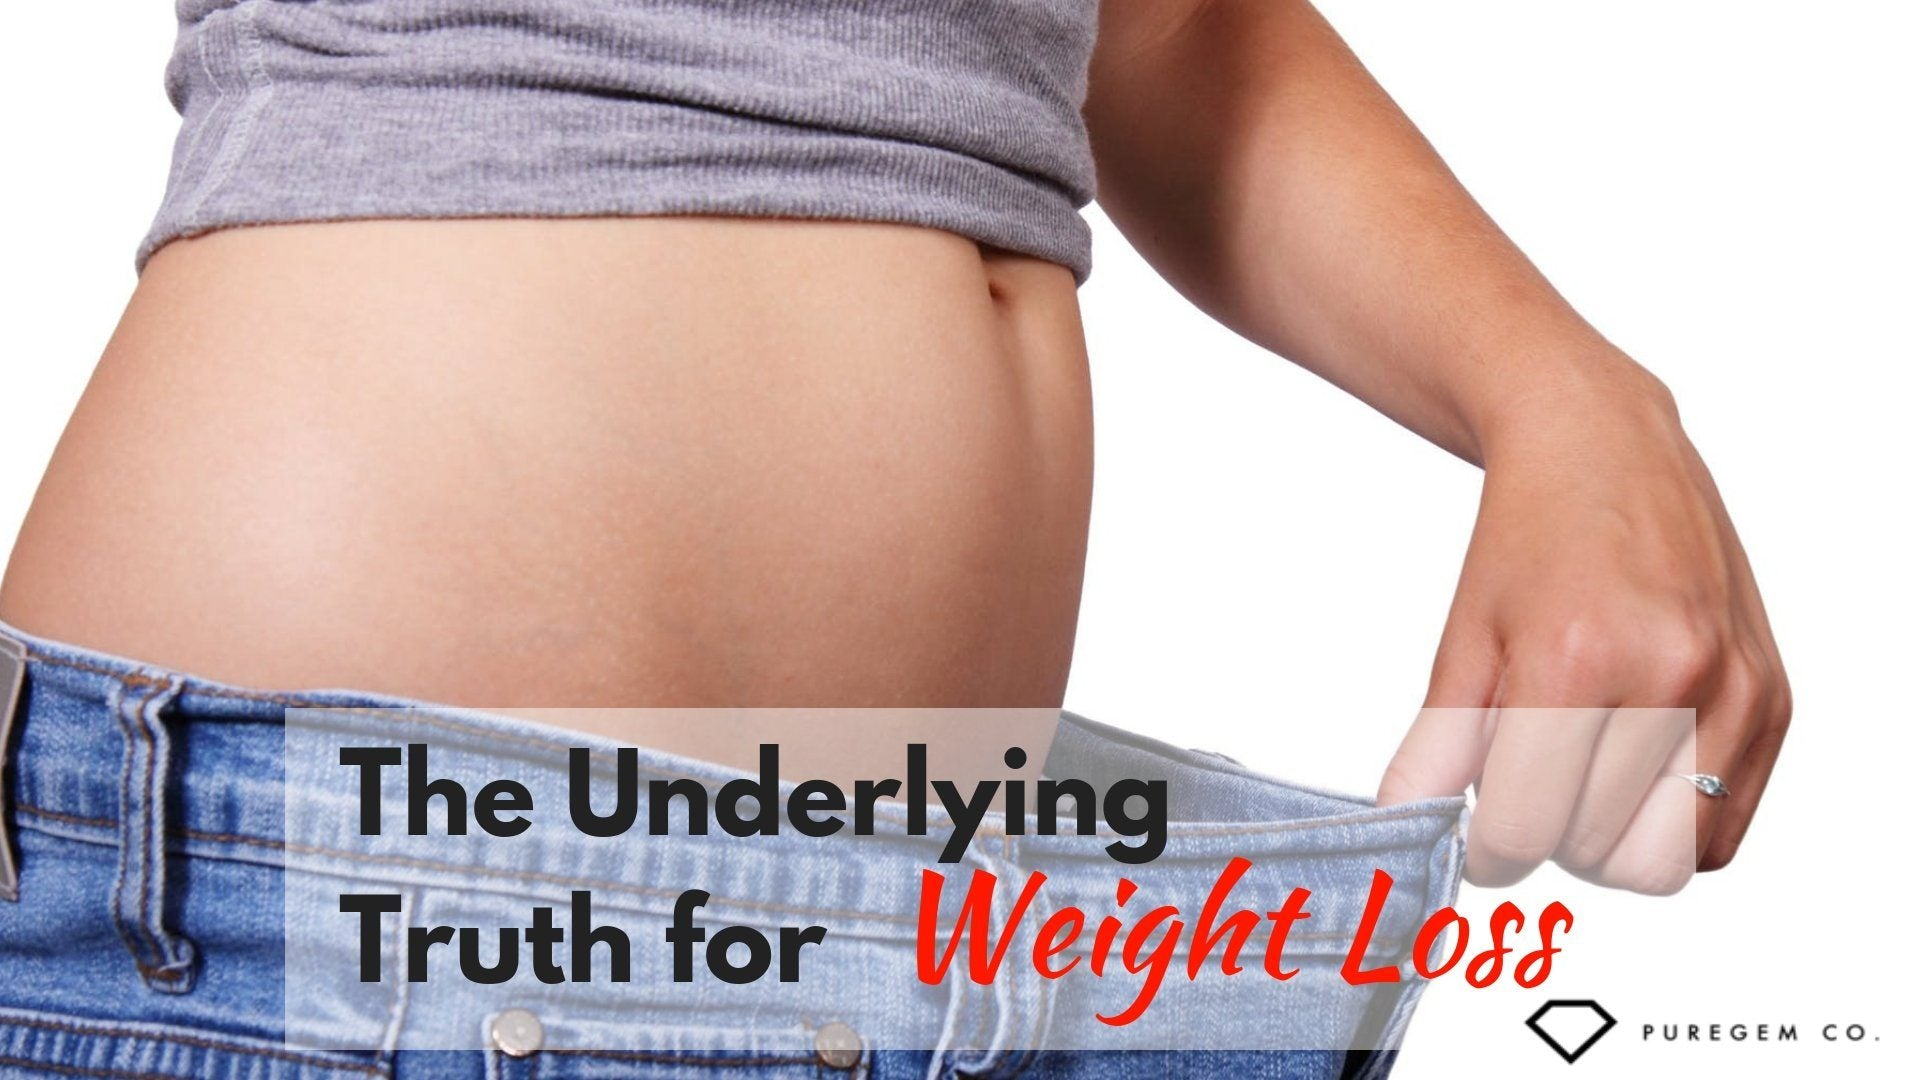 The Underlying Truth for Weight Loss